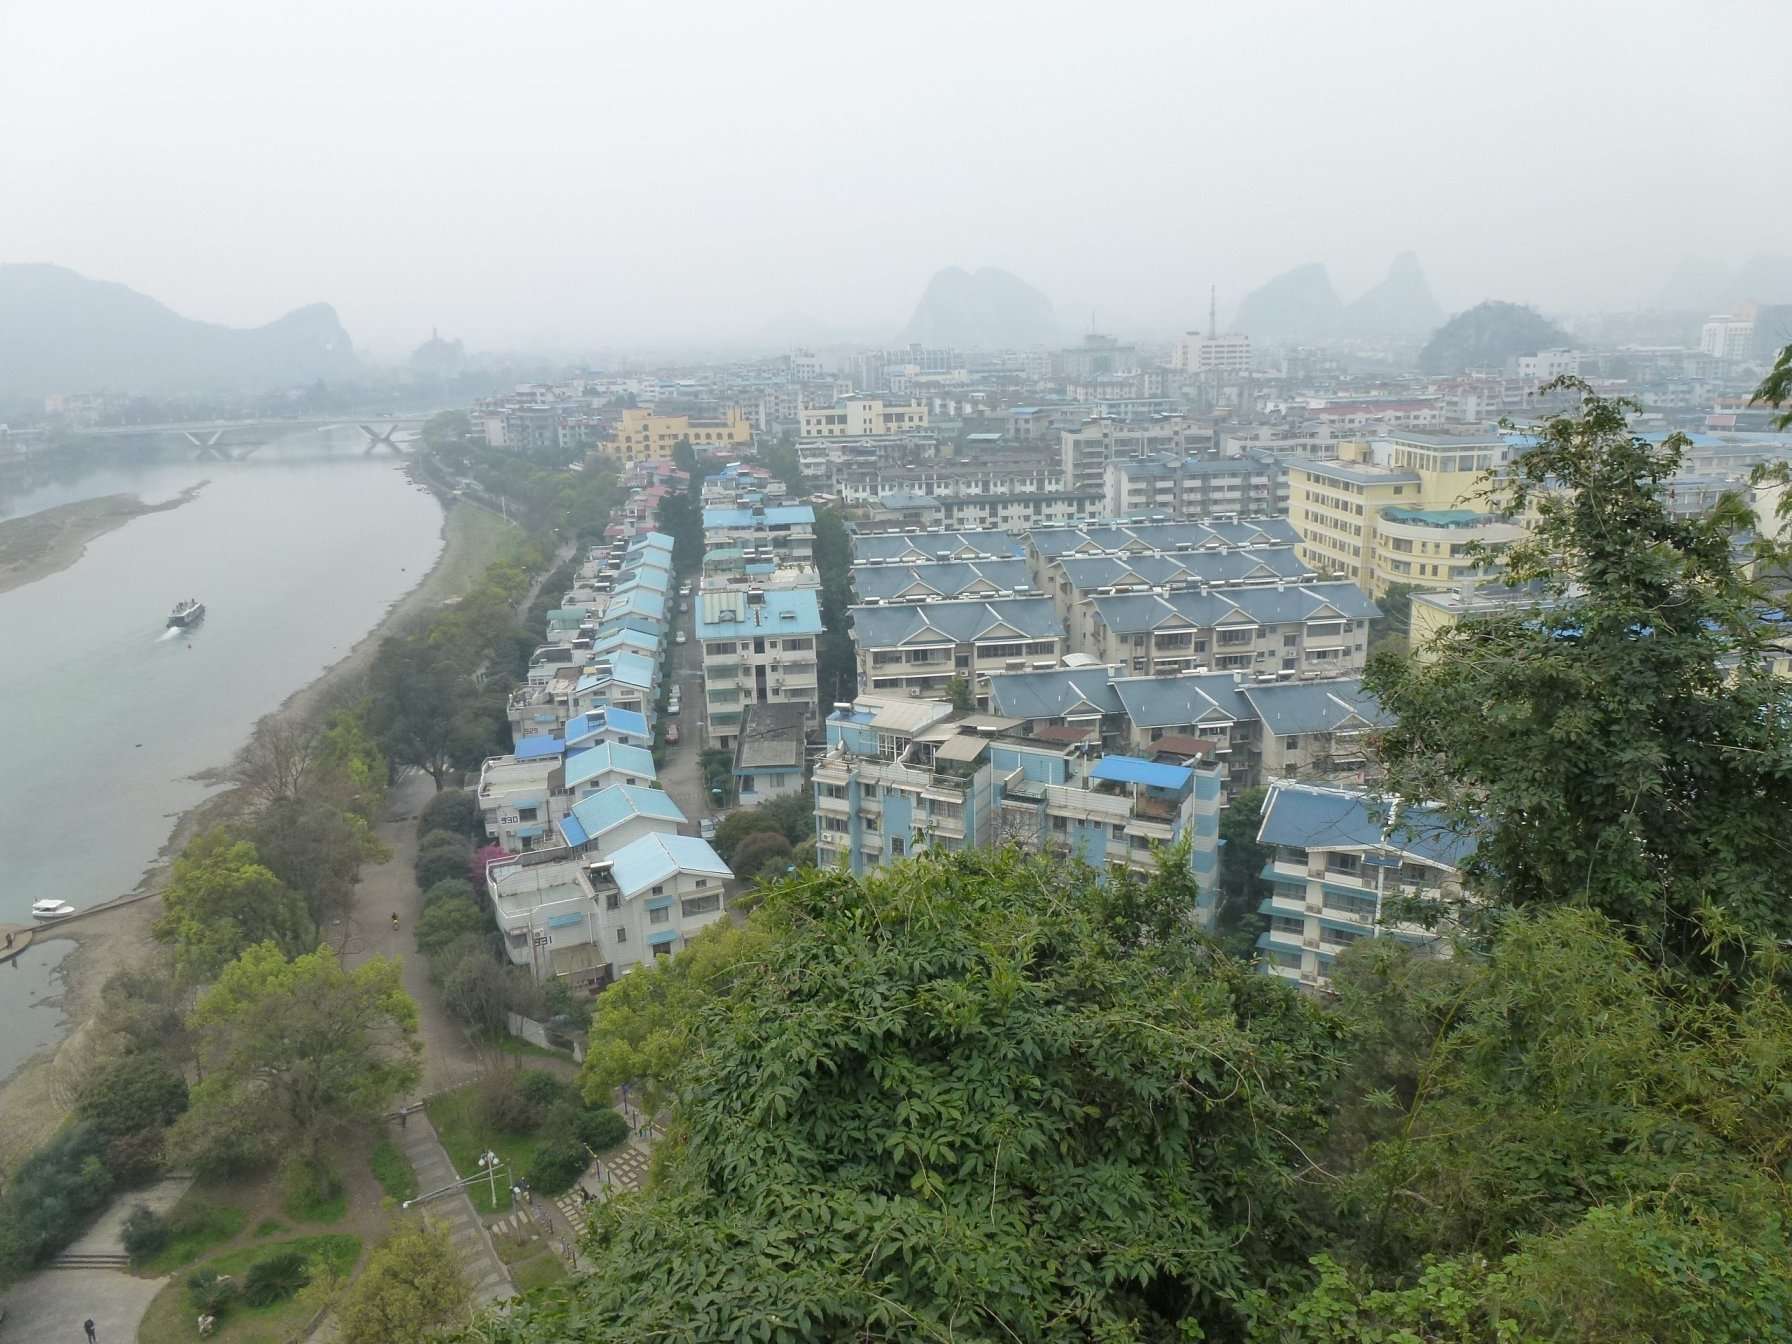 View from hill across Guilin